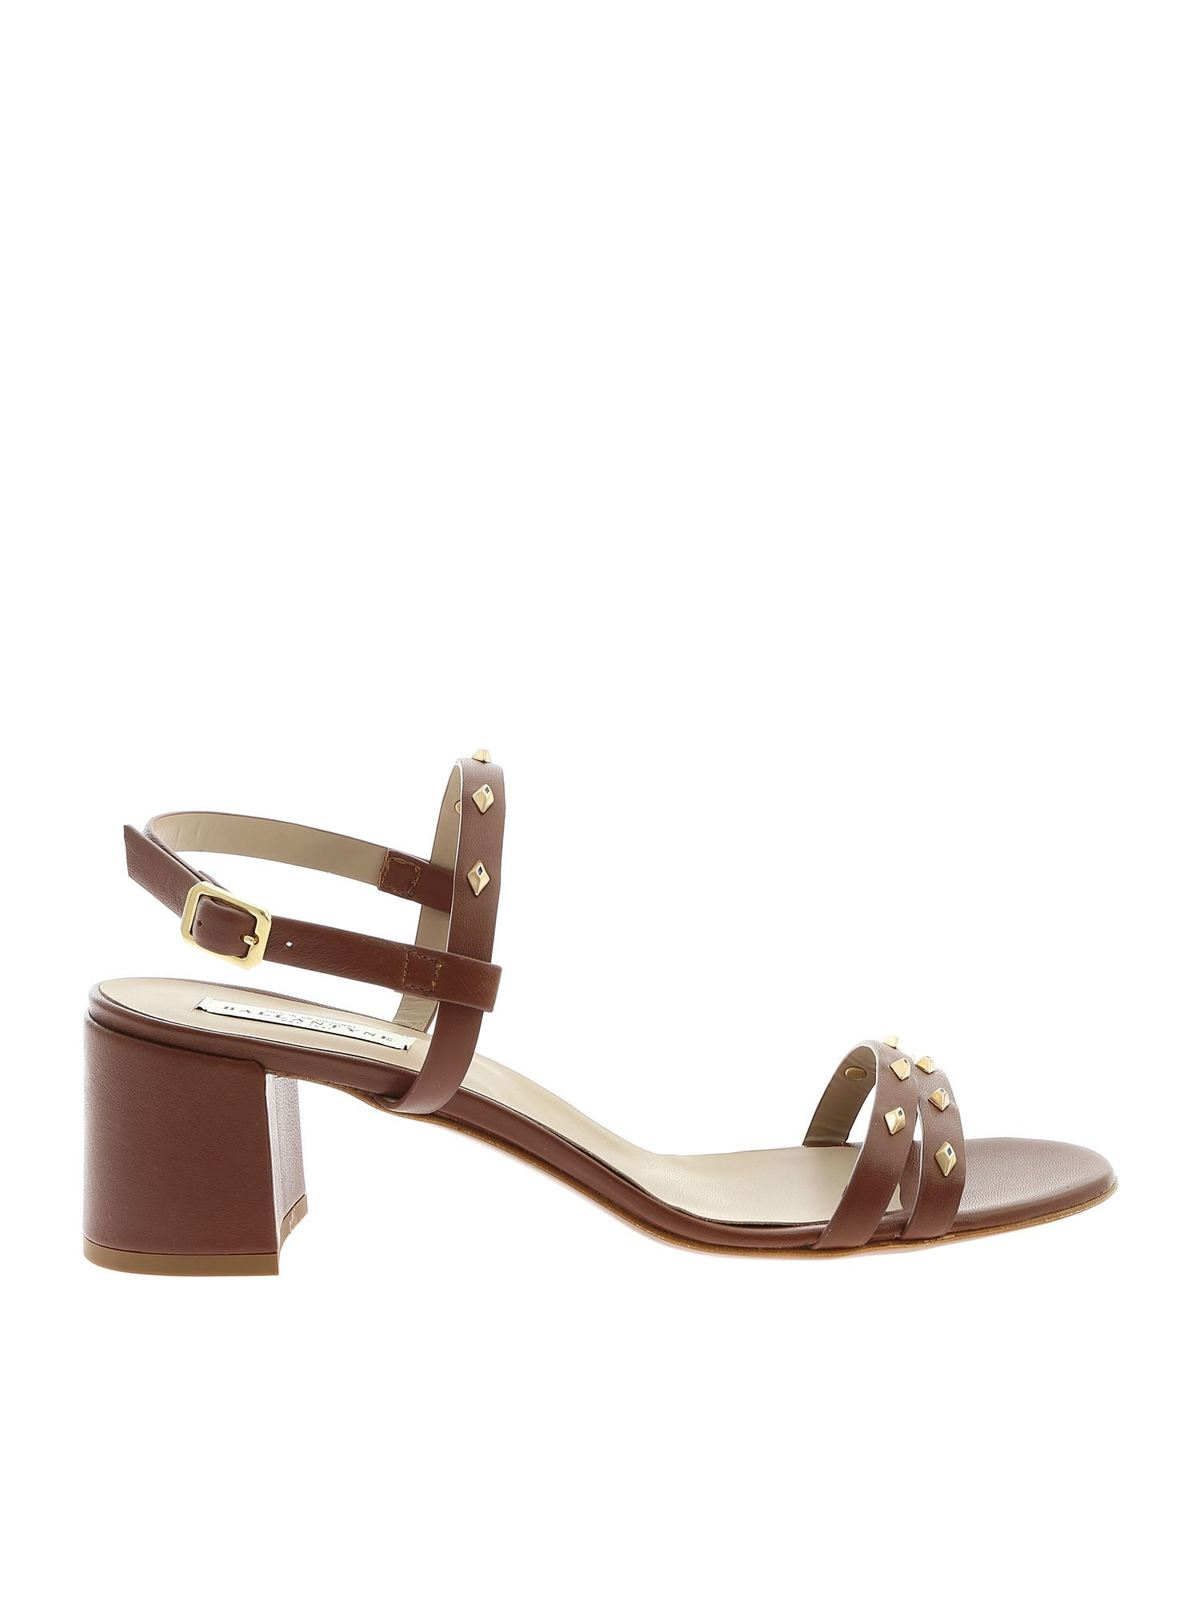 Ballantyne CLAY SANDALS IN BROWN WITH STUDS